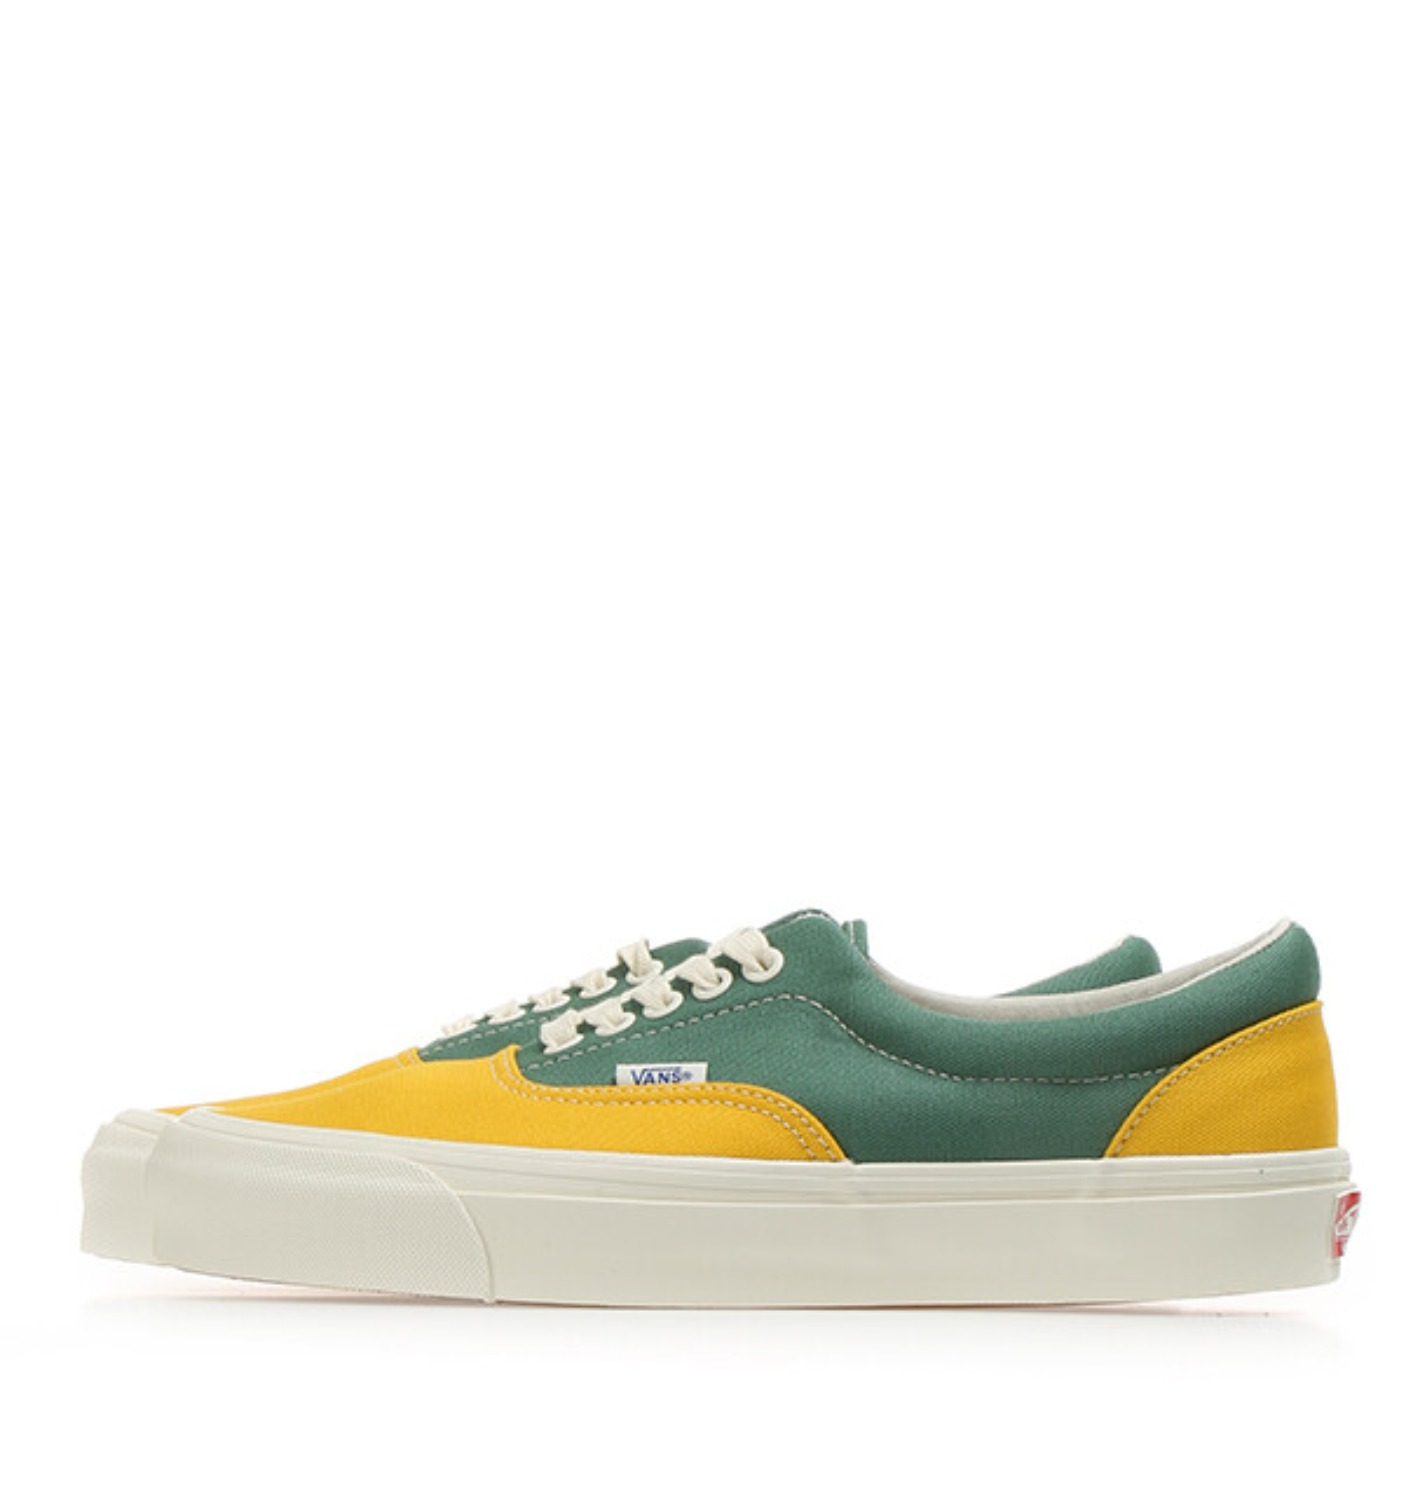 OG ERA LX(CANVAS) OLD GOLD/FIR